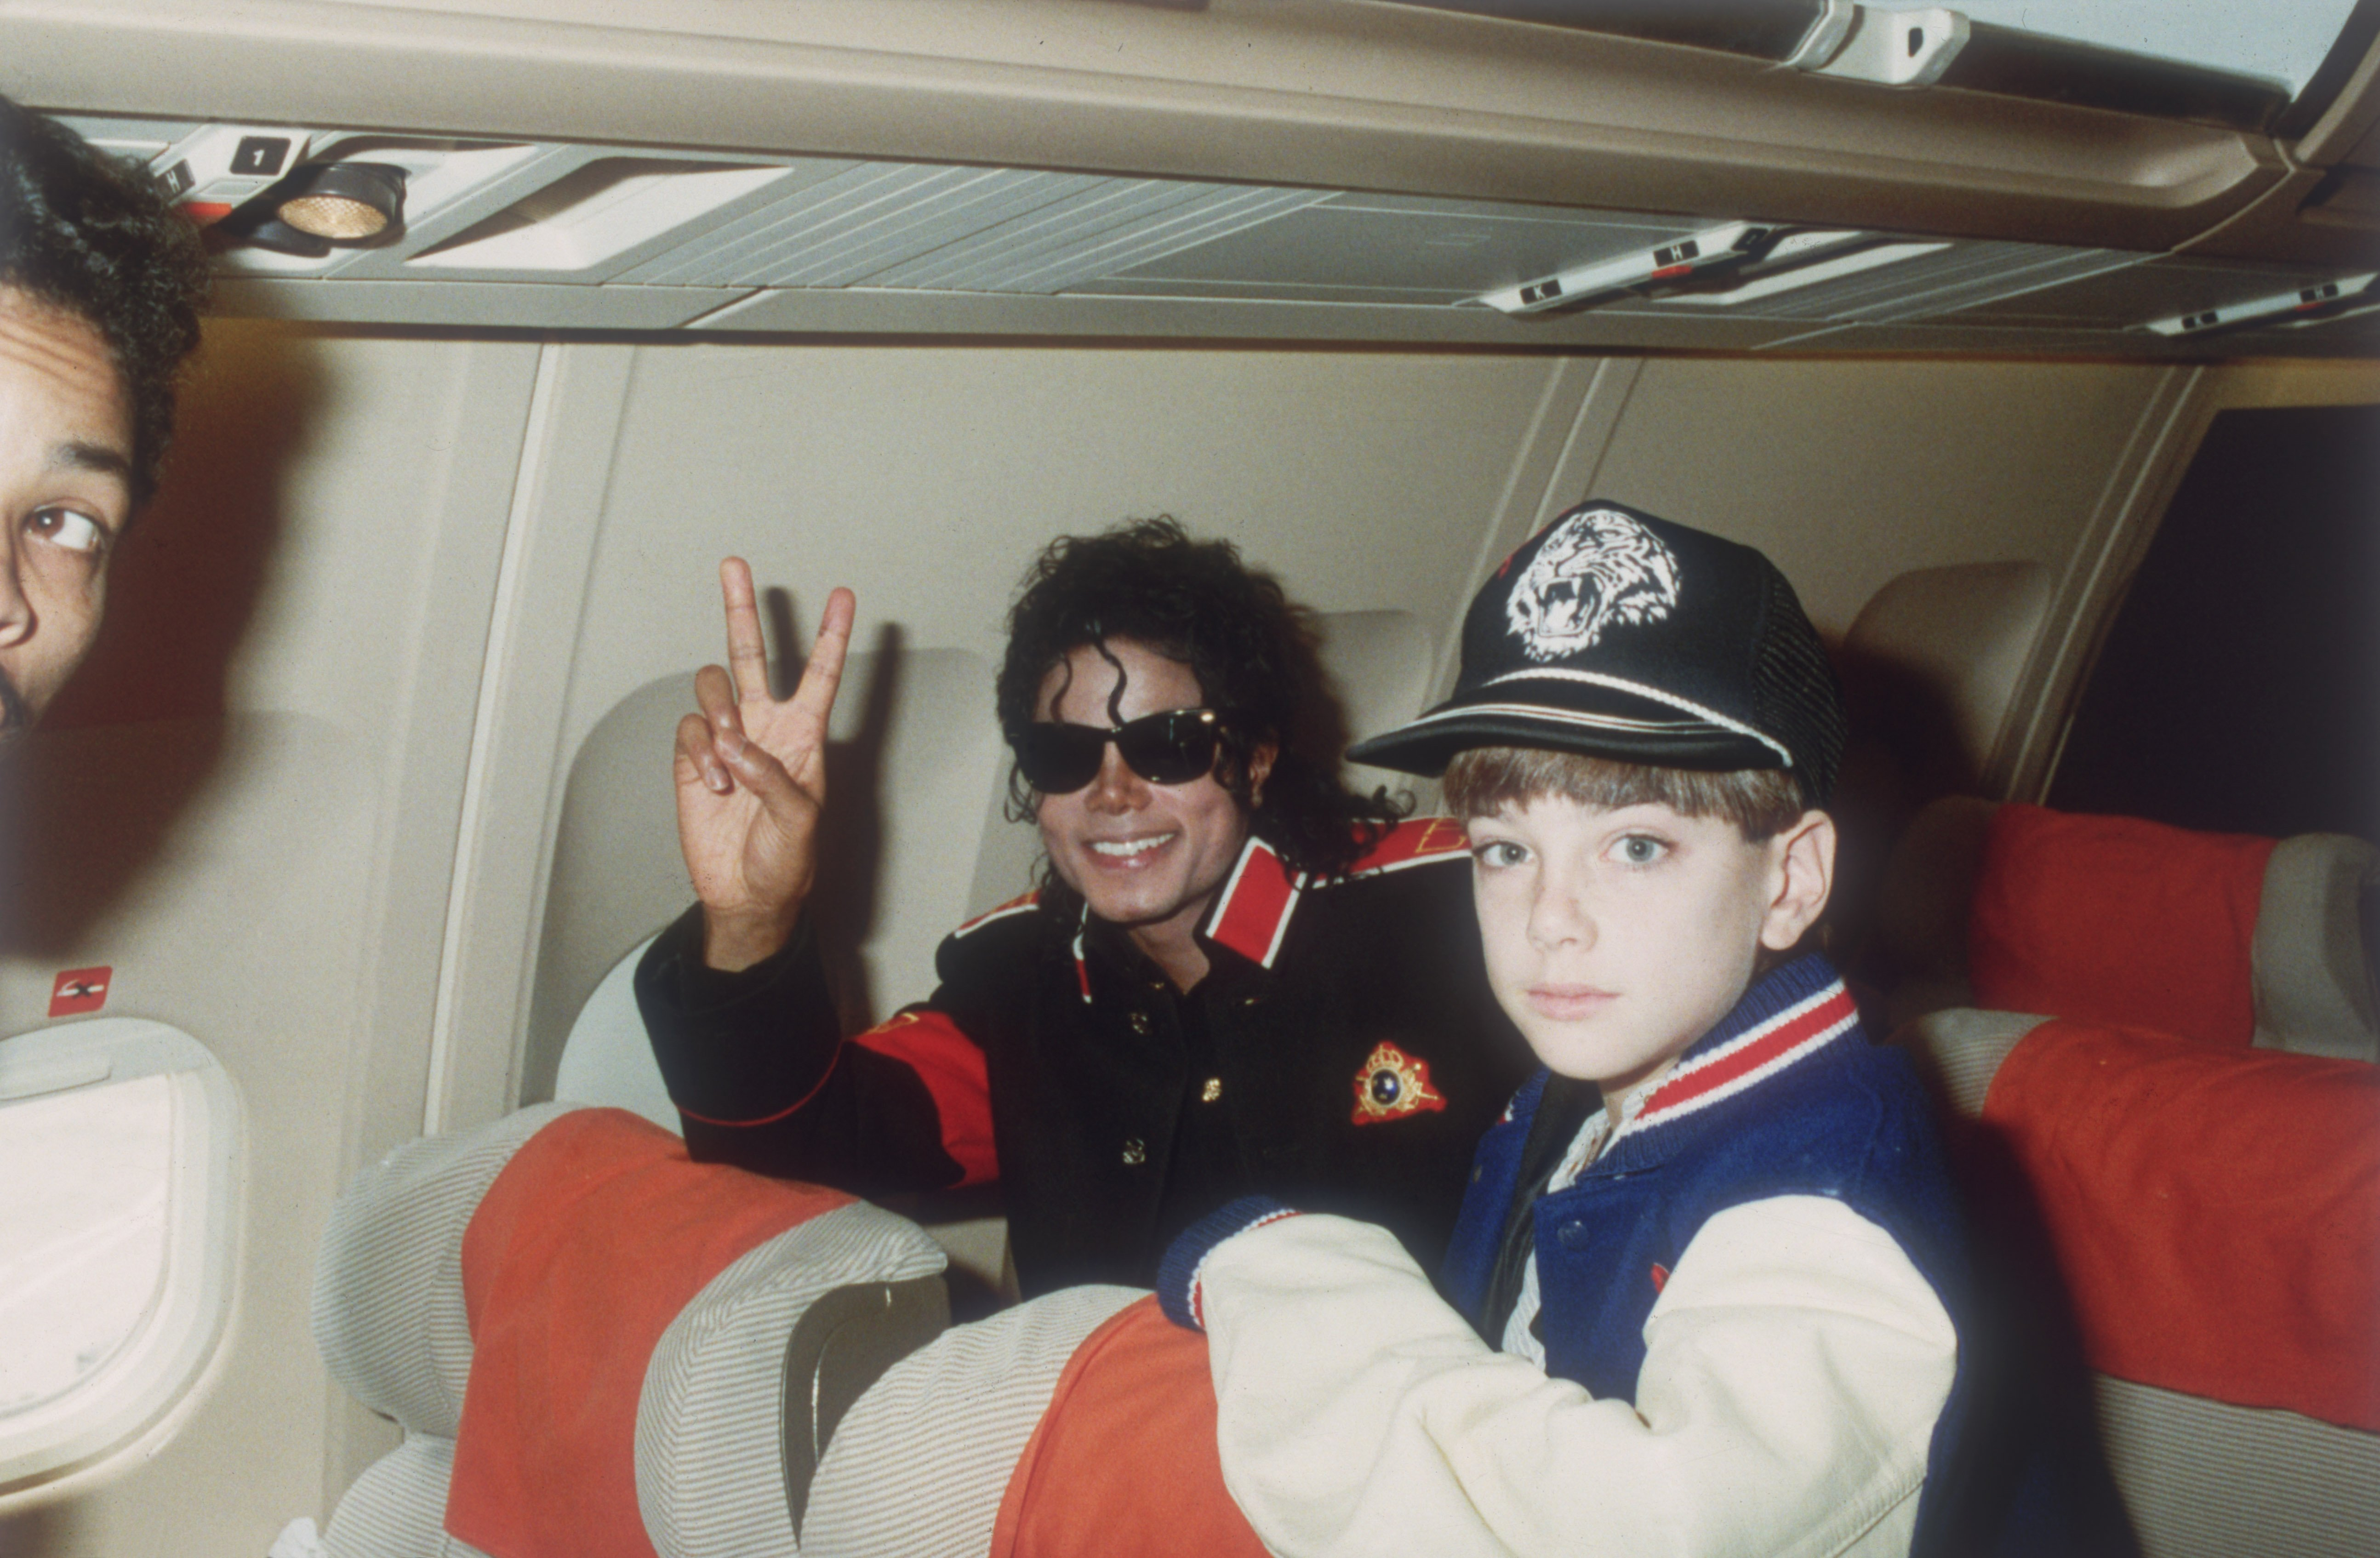 Michael Jackson with 10 year old James Safechuck on Tour Plane | Photo: Getty Images